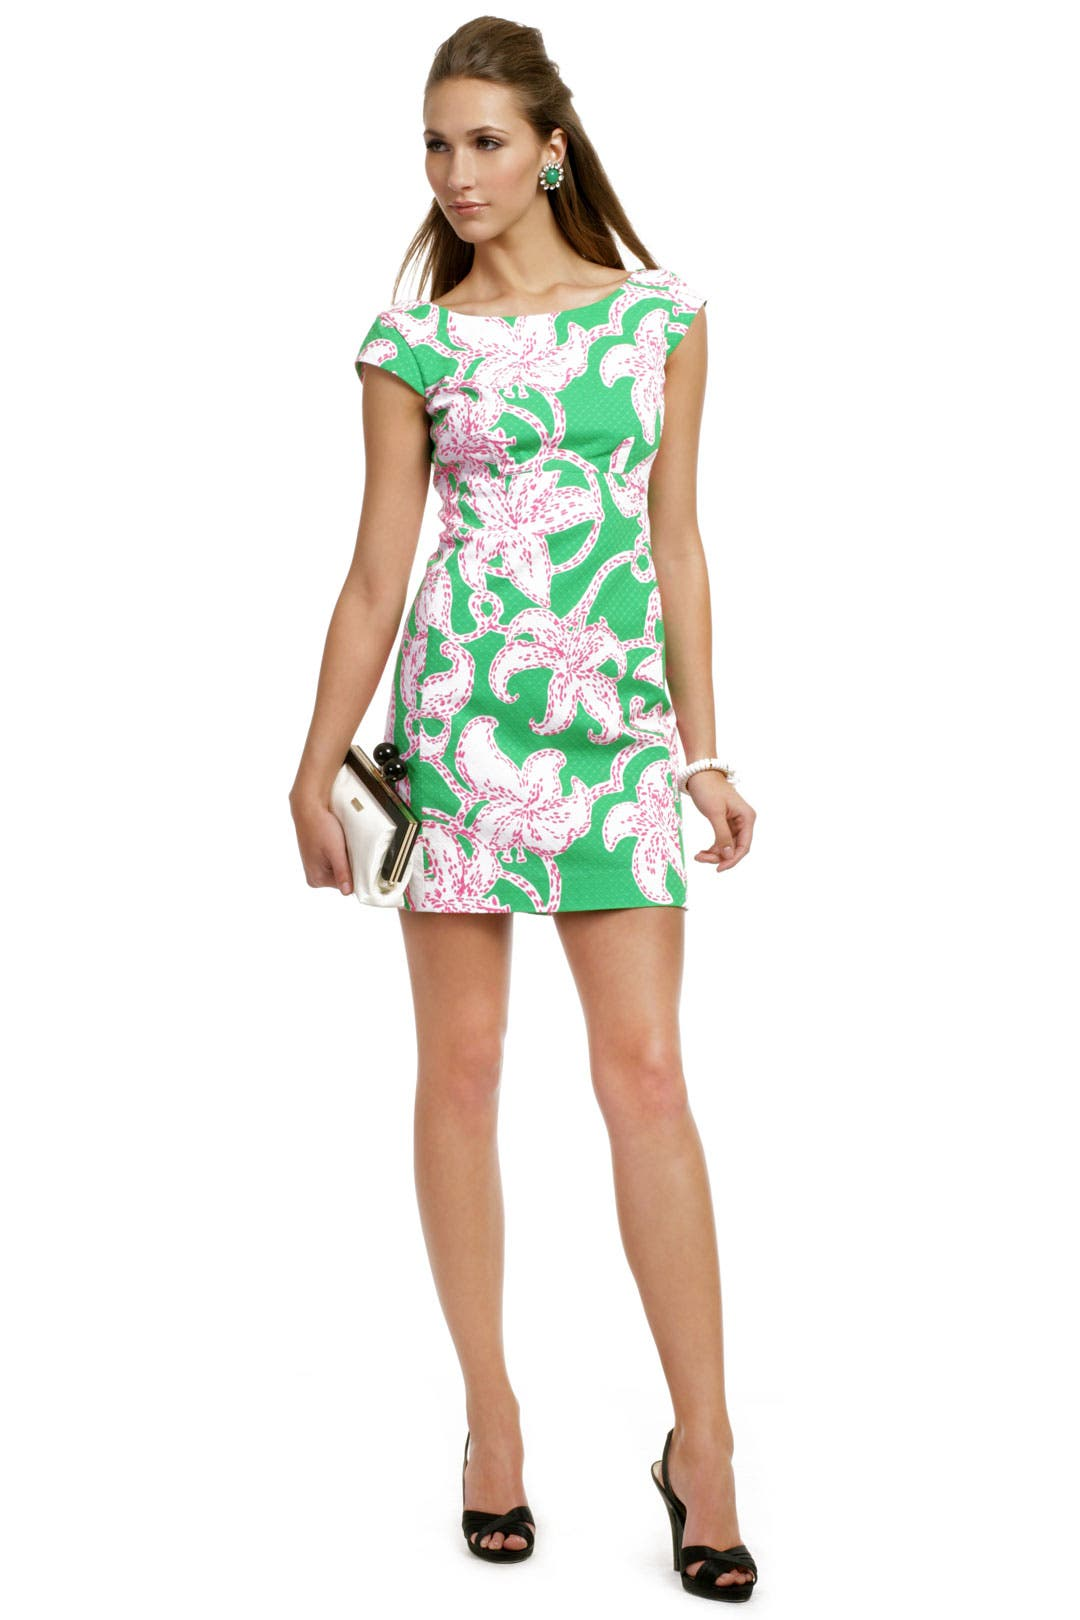 Lilly Pulitzer Dresses For Sale Online Sale